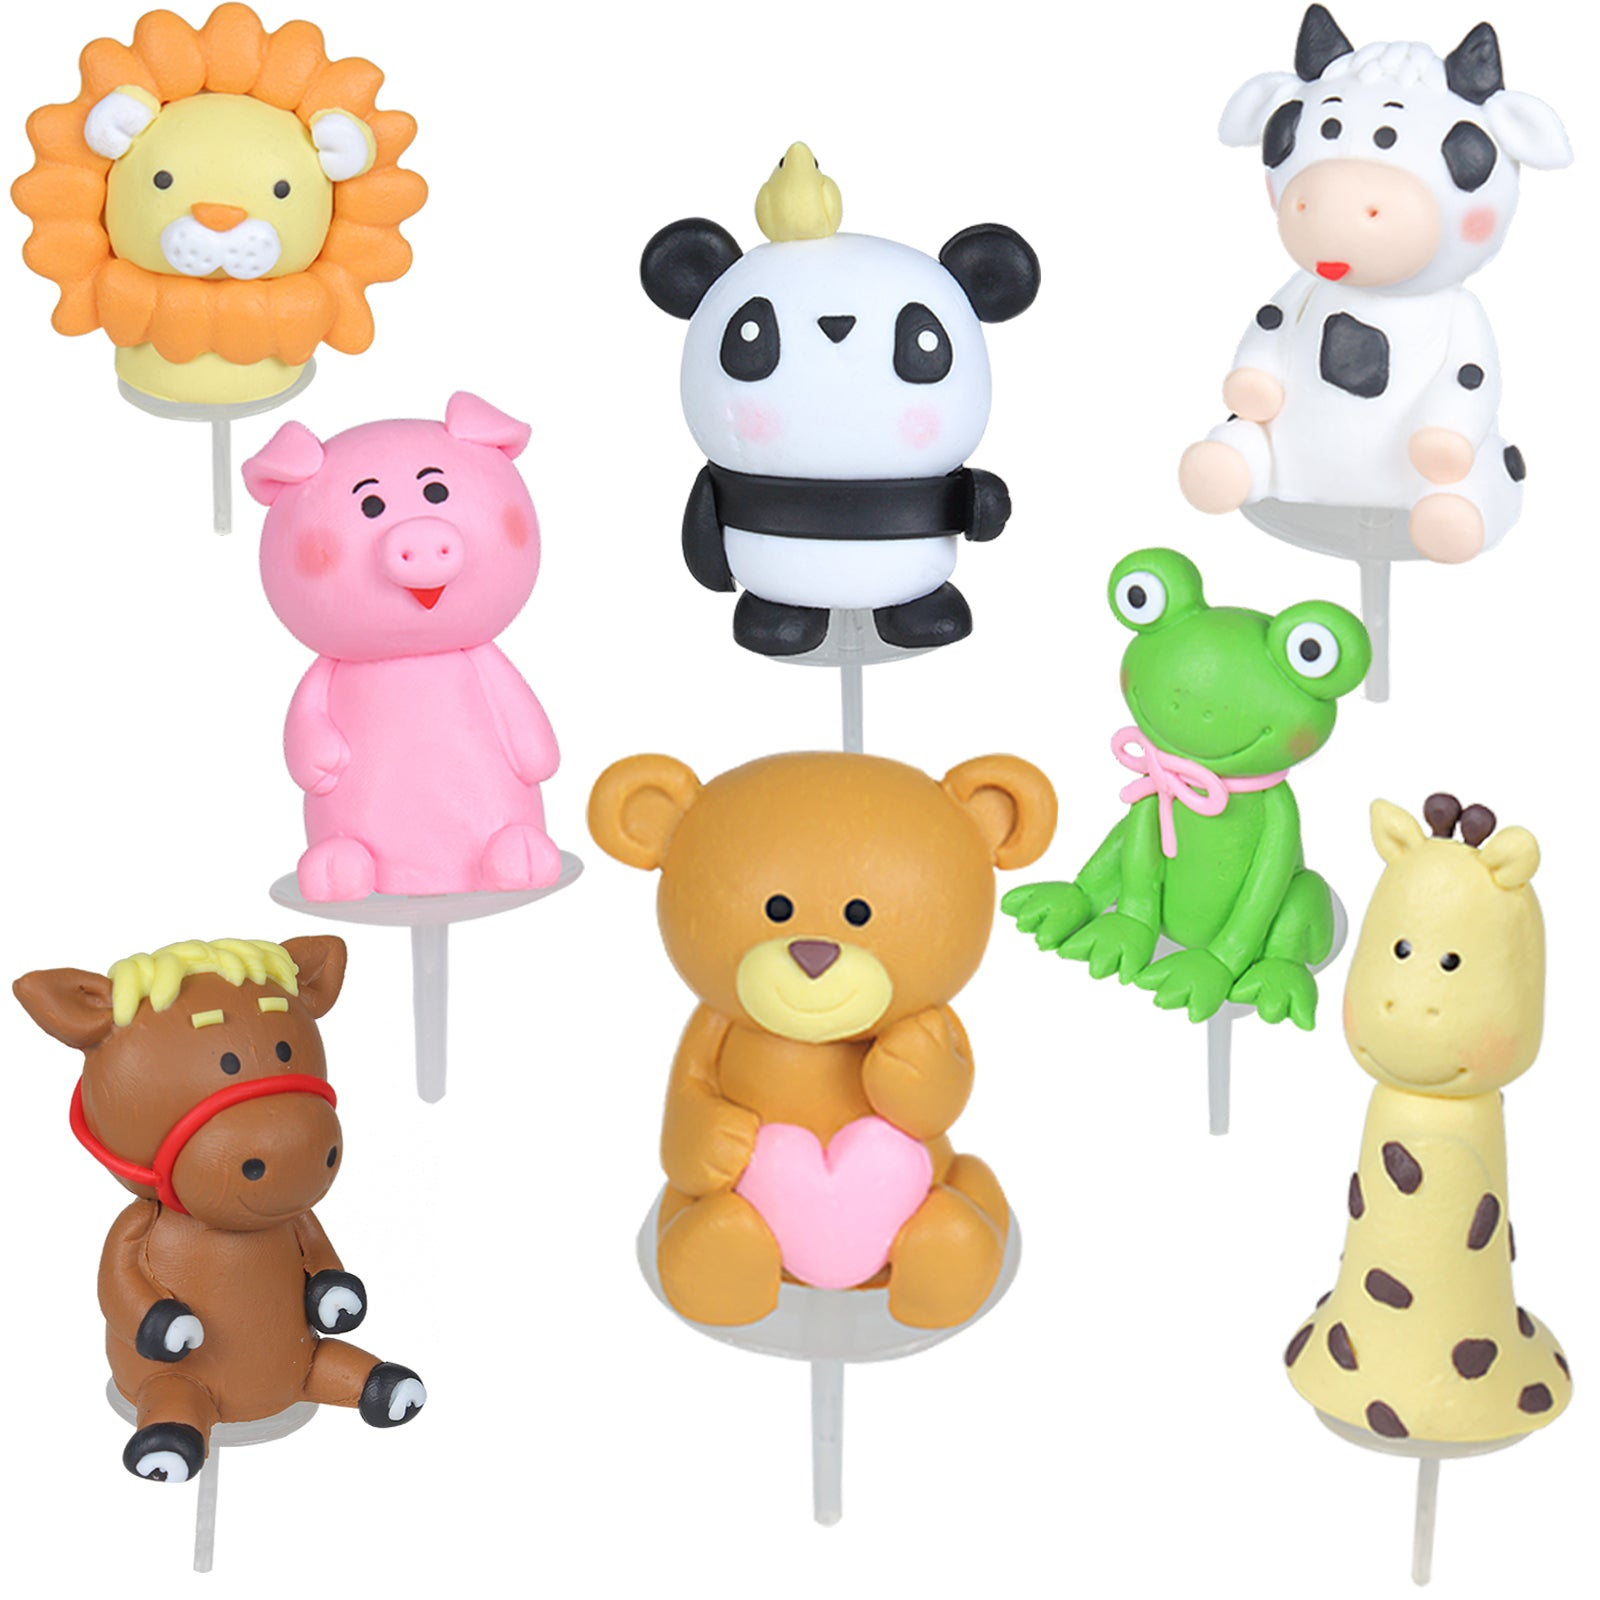 Farm and Zoo Animal Cake Toppers Set 11-Count 1.7-2.7inch